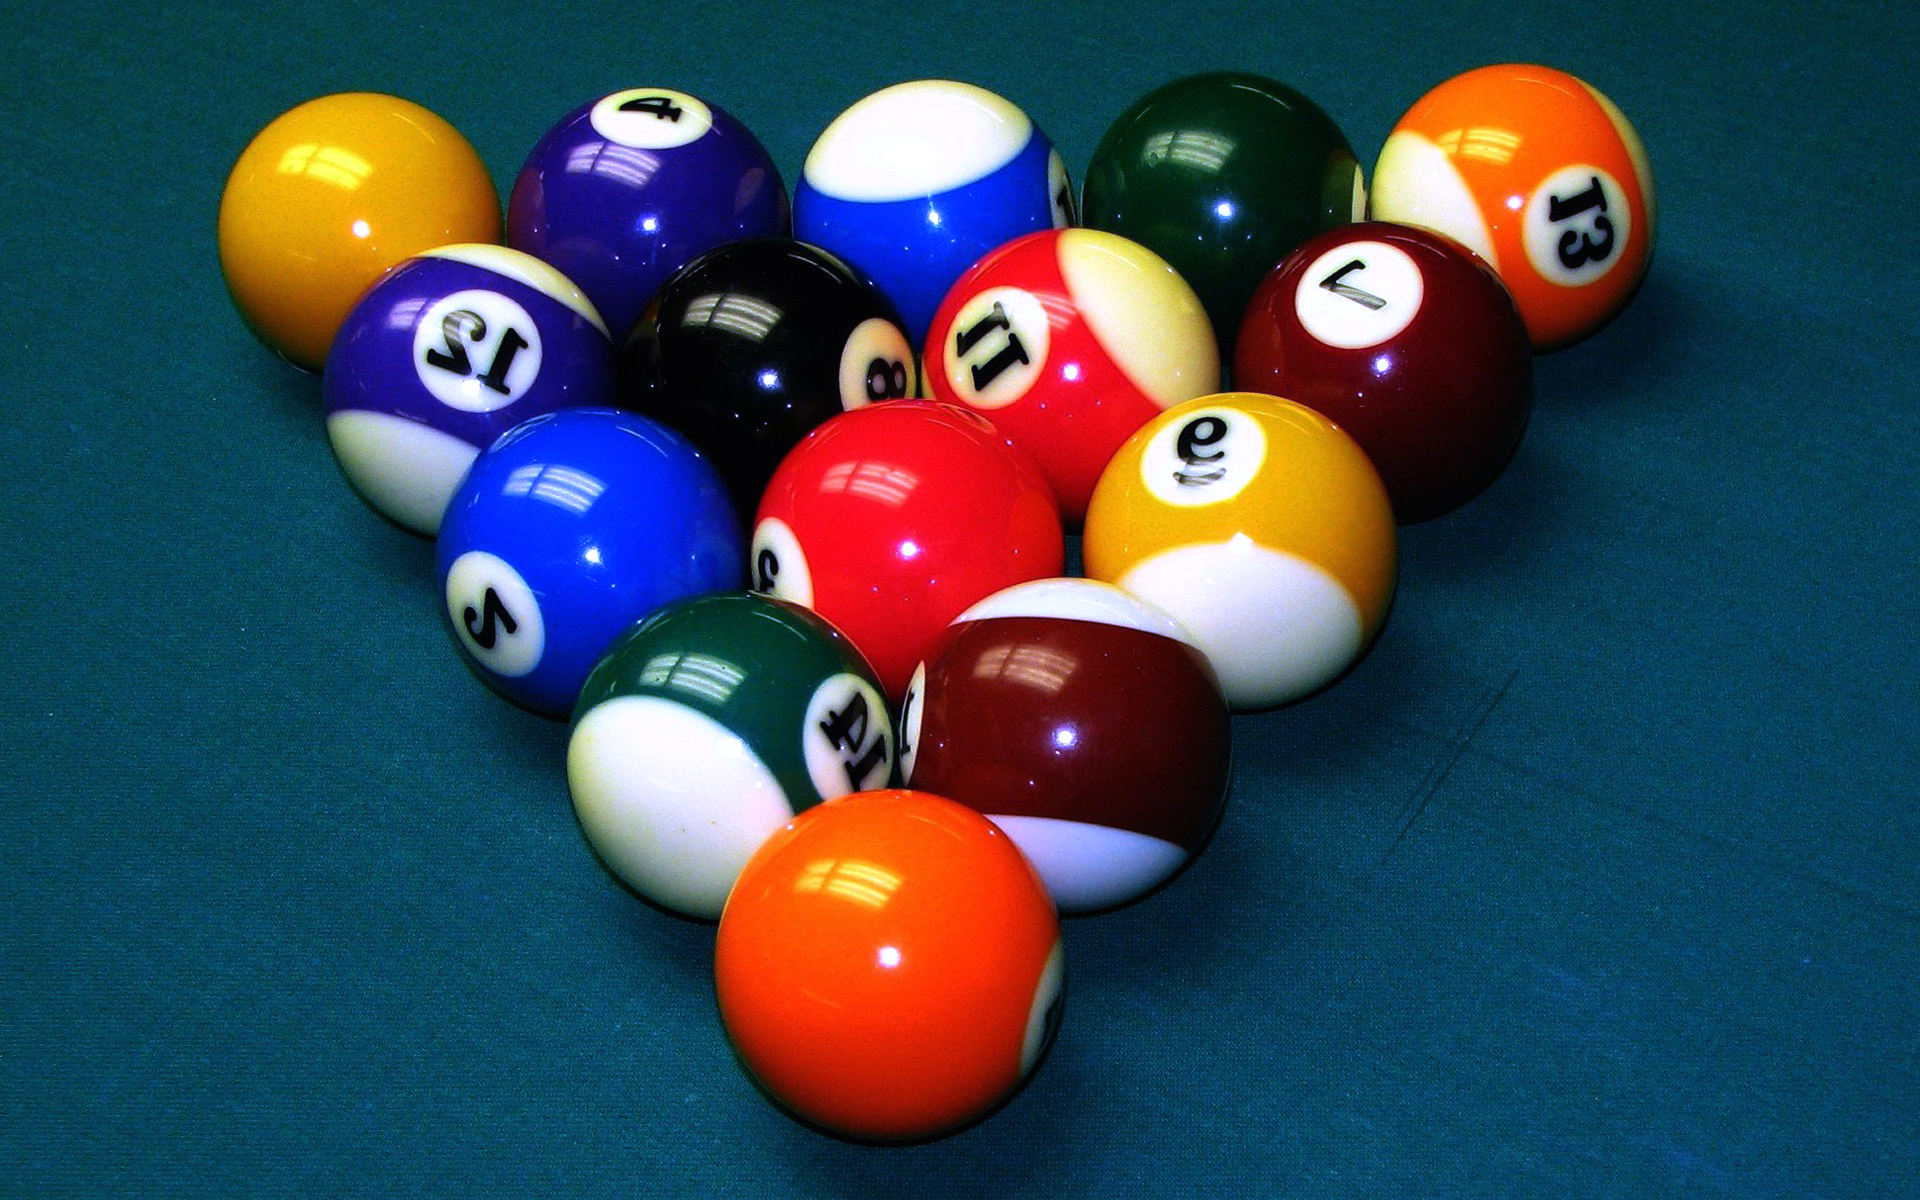 Billiard hd wallpapers